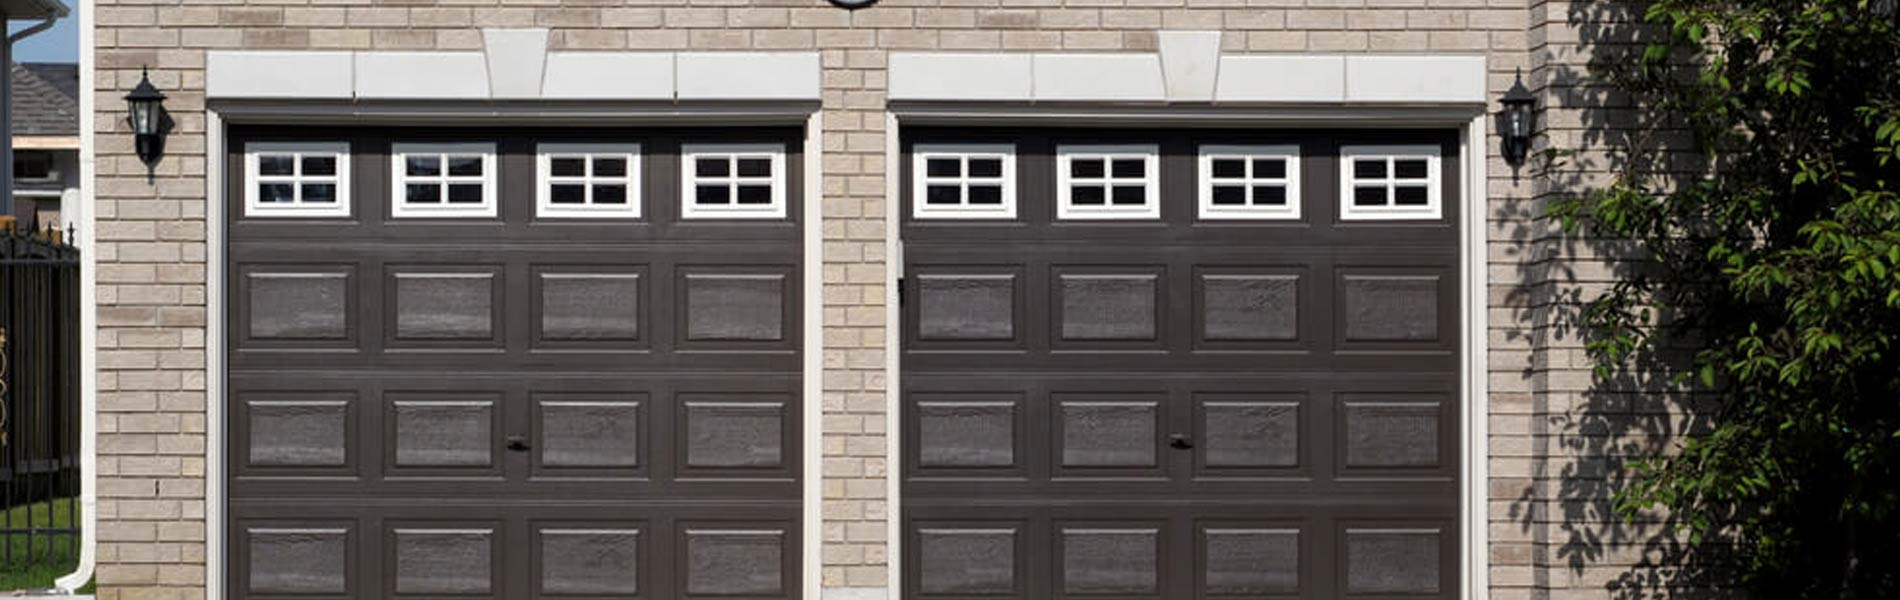 Expert Garage Doors Repairs Daly City, CA 650-434-6043